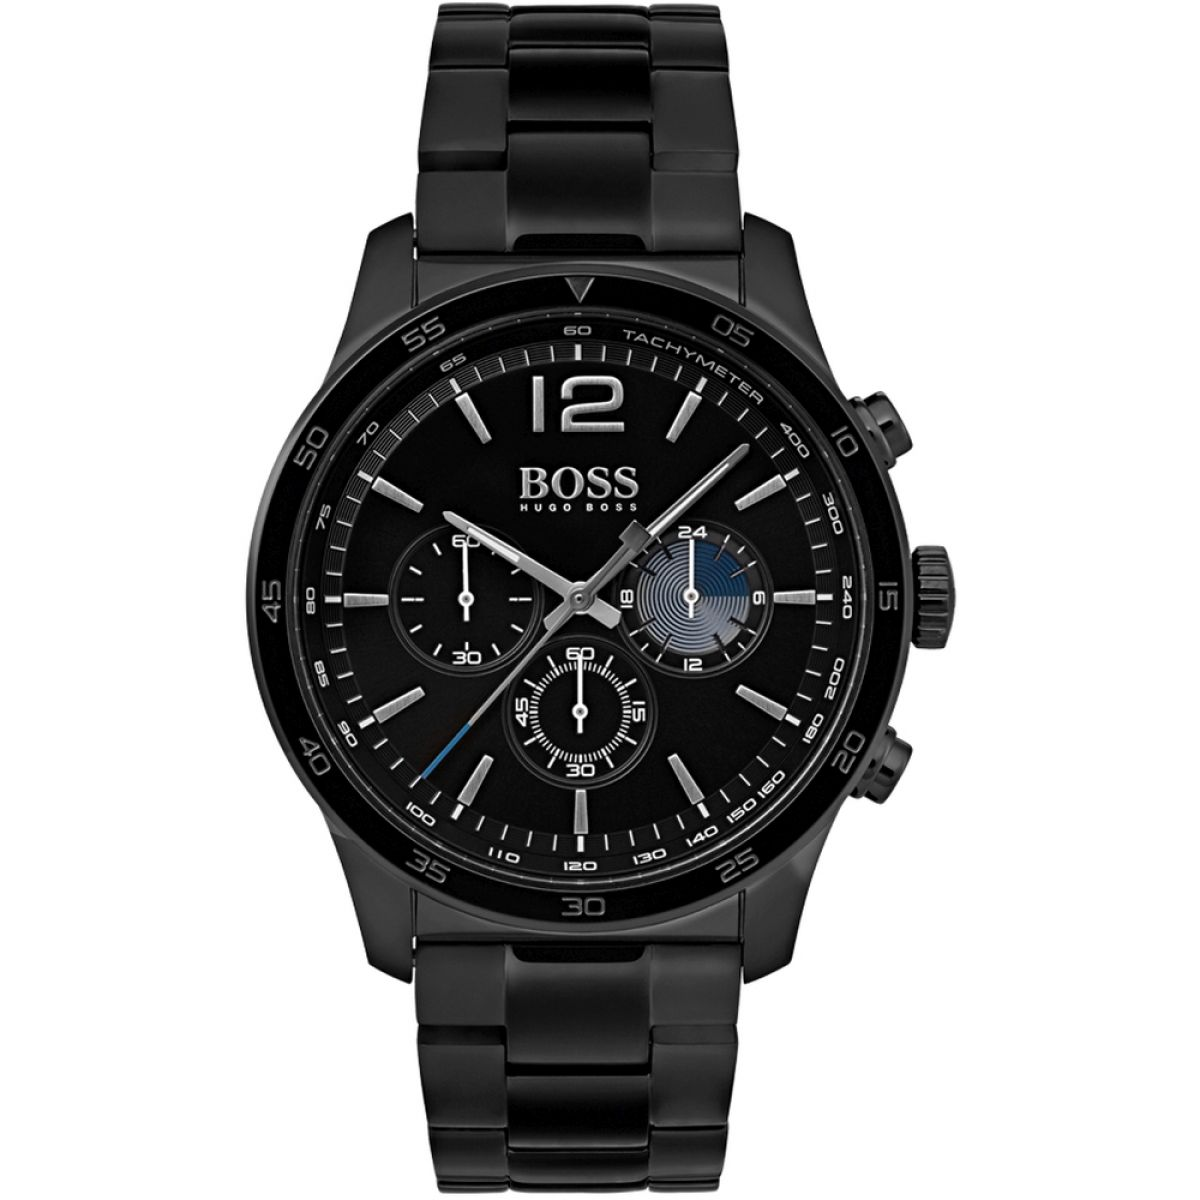 Gents hugo boss professional chronograph watch 1513528 for Hugo boss watches